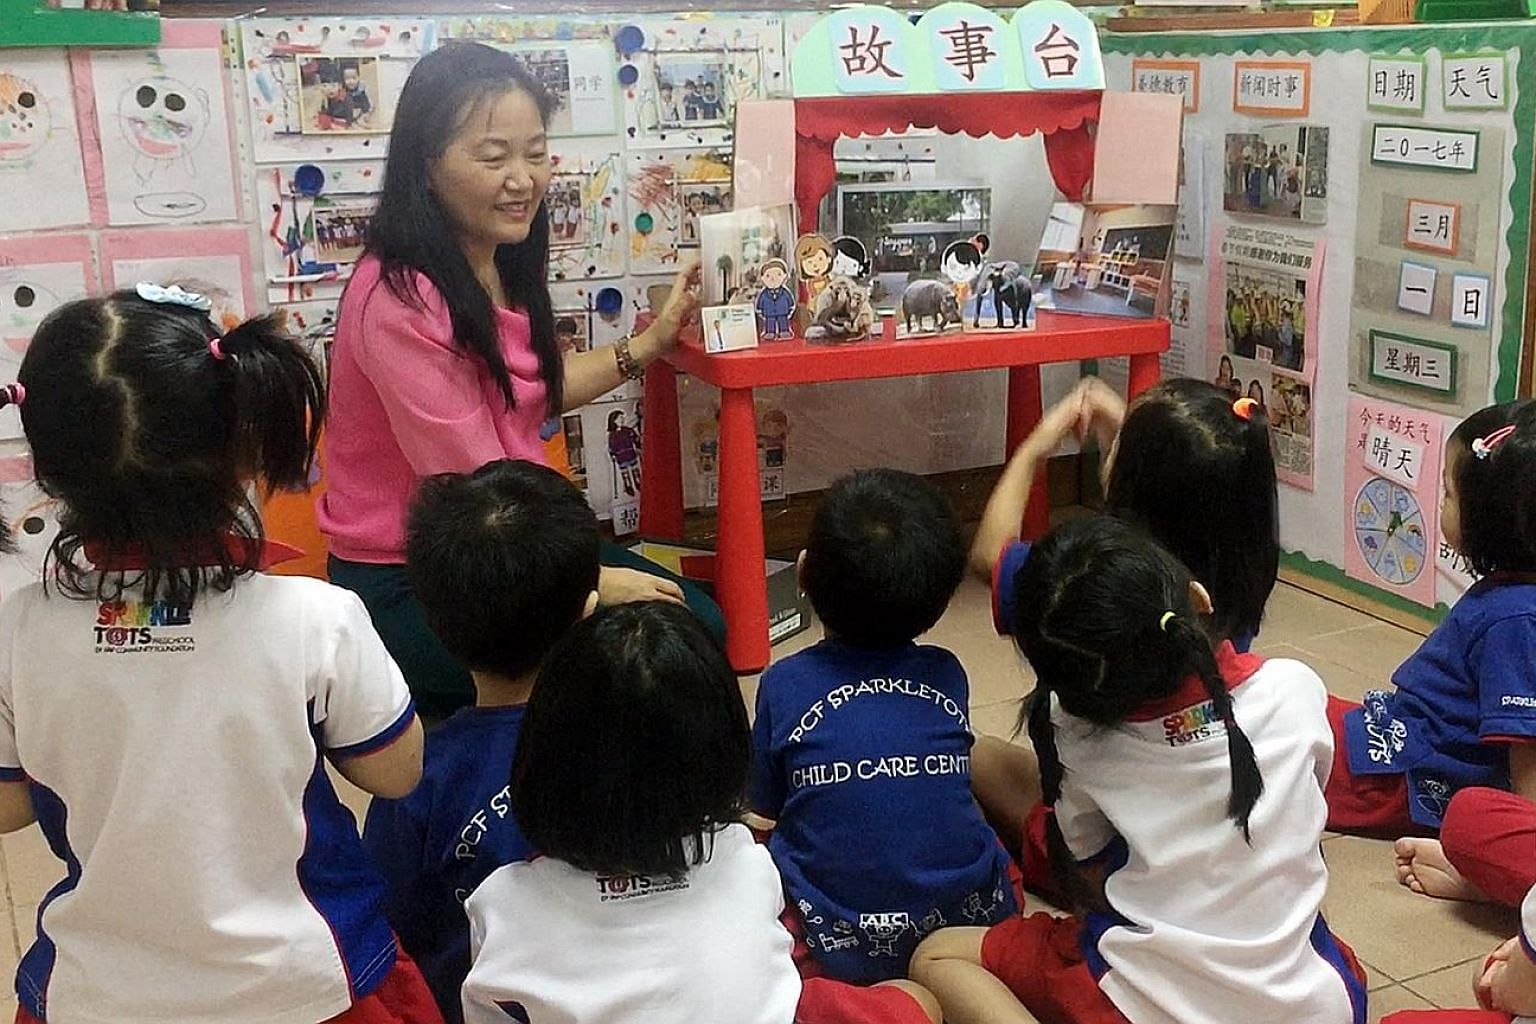 PCF Sparkletots introduced new elements, such as using handmade characters, to bring stories to life in its Chinese curriculum for Nursery 2 children this year.